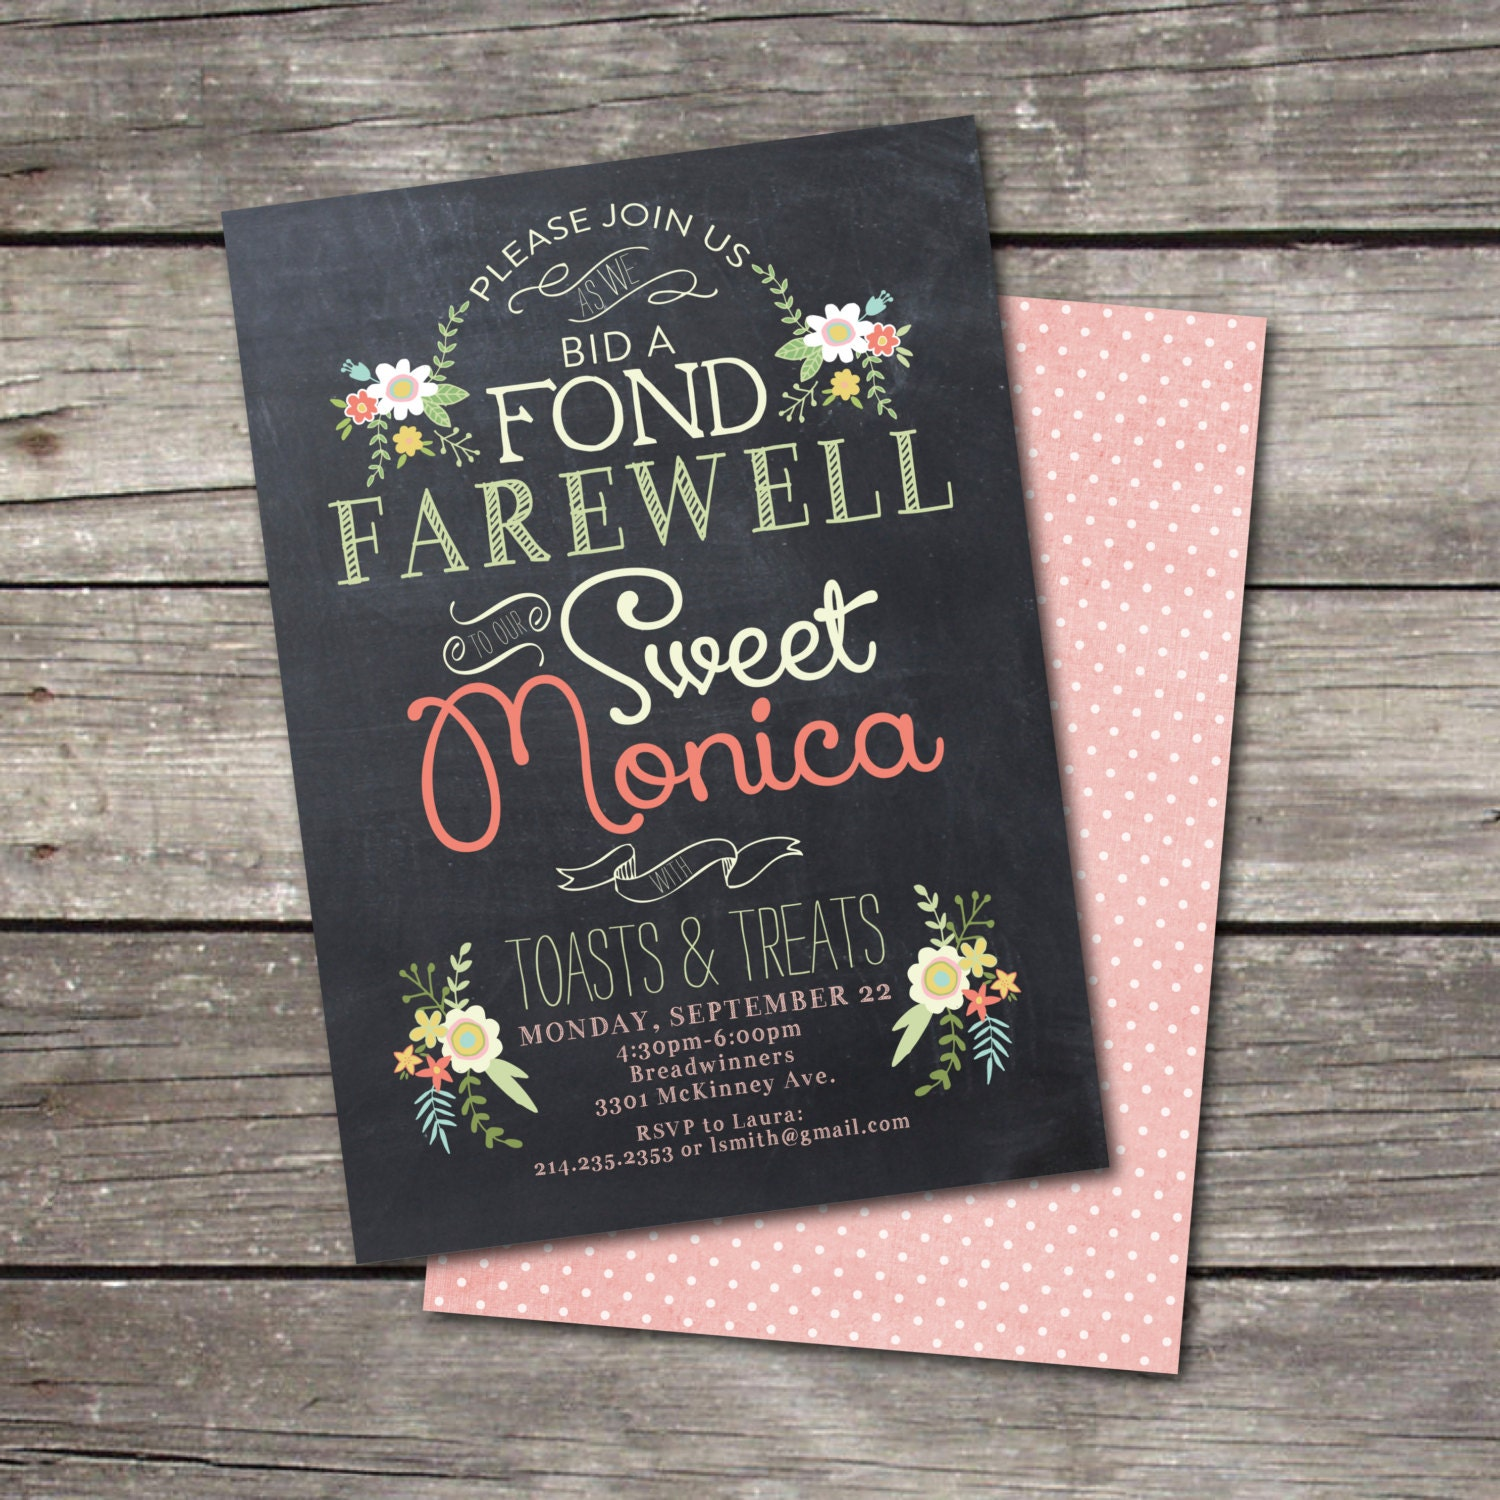 Printable Chalkboard Invitations with awesome invitations example